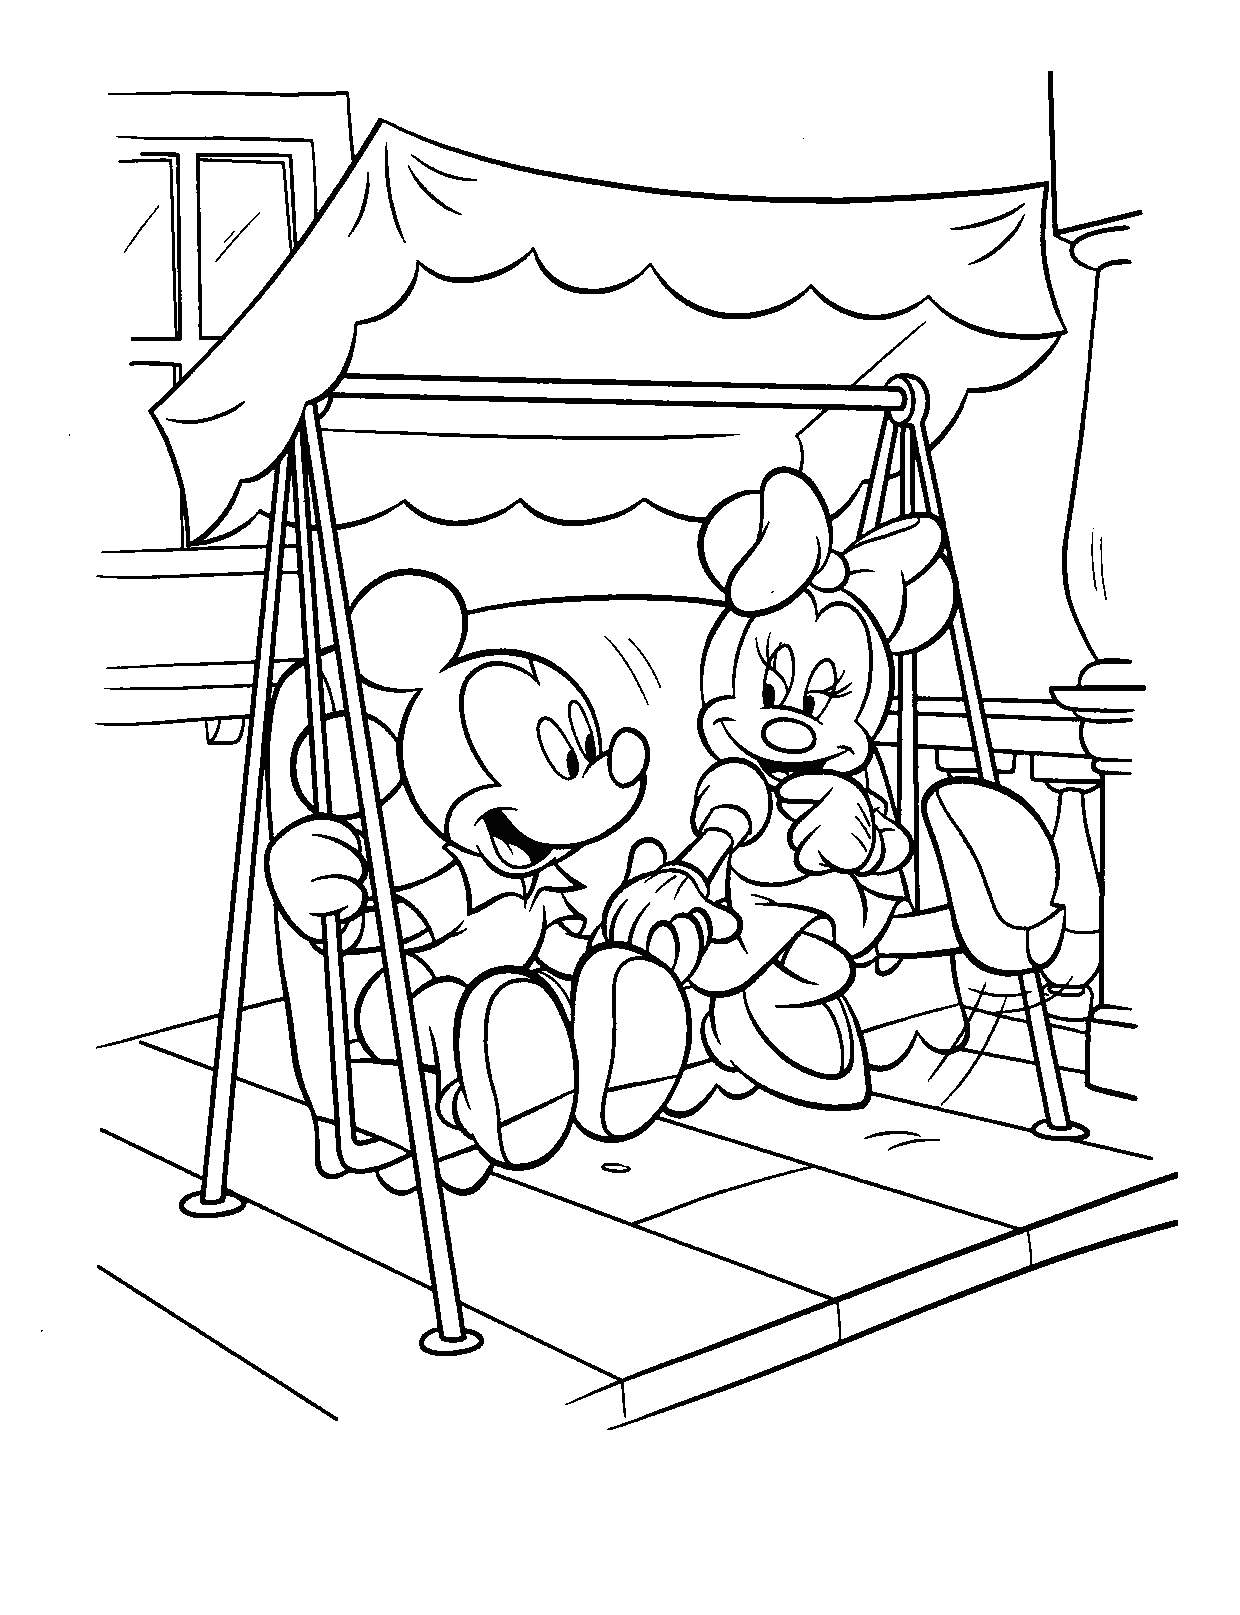 mickey and minnie colouring pages baby disney coloring pages to download and print for free colouring pages mickey and minnie